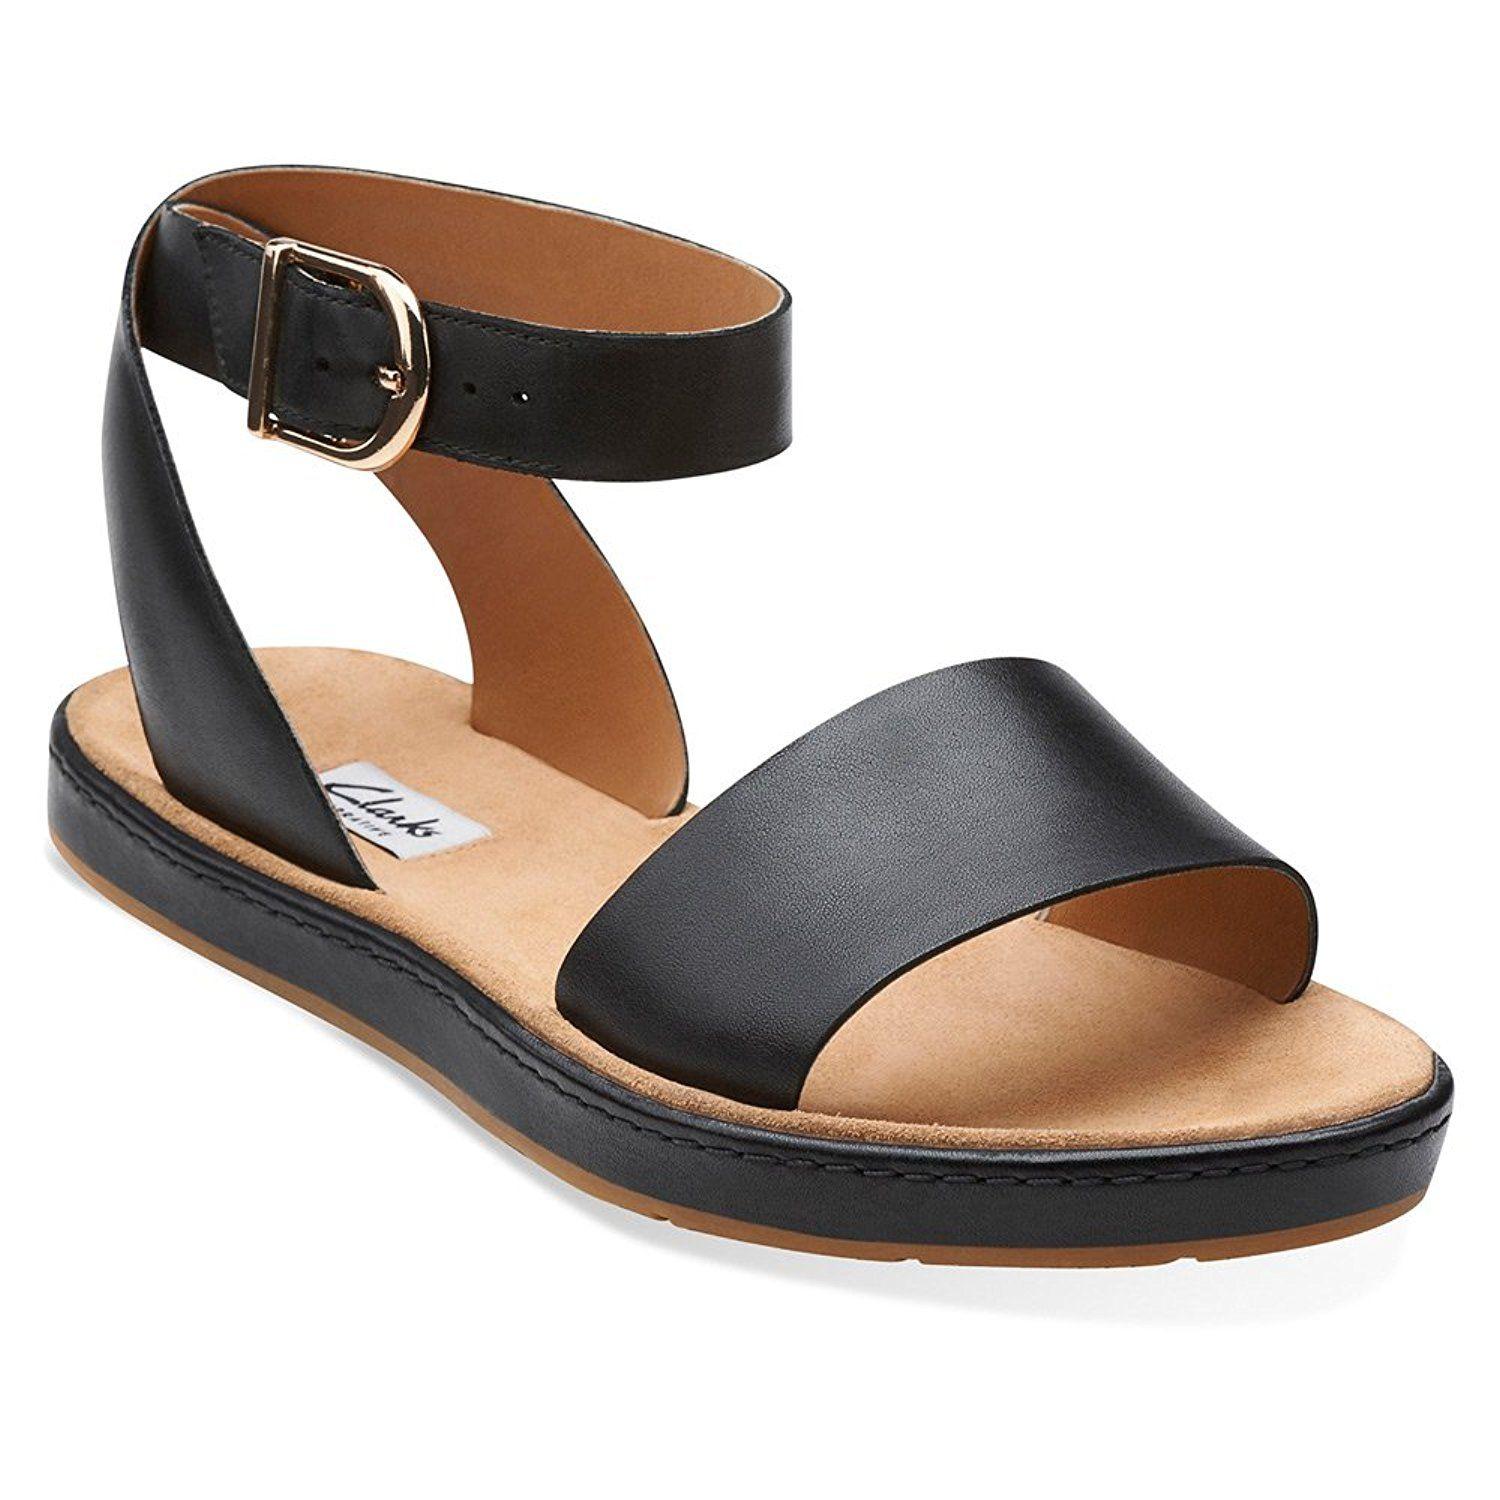 c9b8c692a Clarks Narrative Romantic Moon    Insider s special review you can t miss.  Read more   Clarks sandals